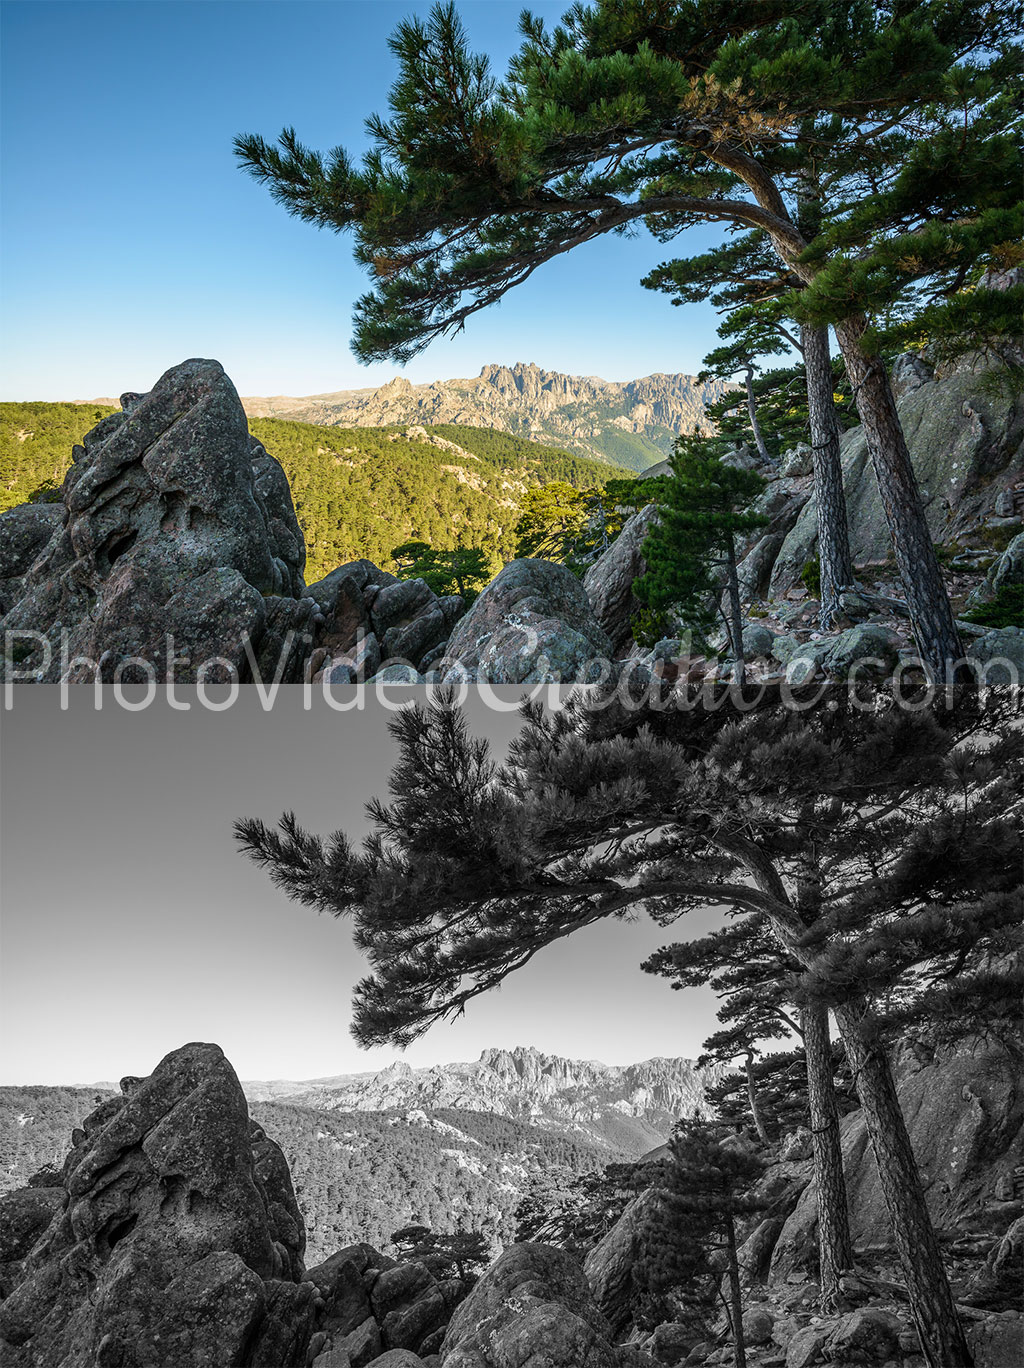 Color landscape photo and Black and white landscape photo